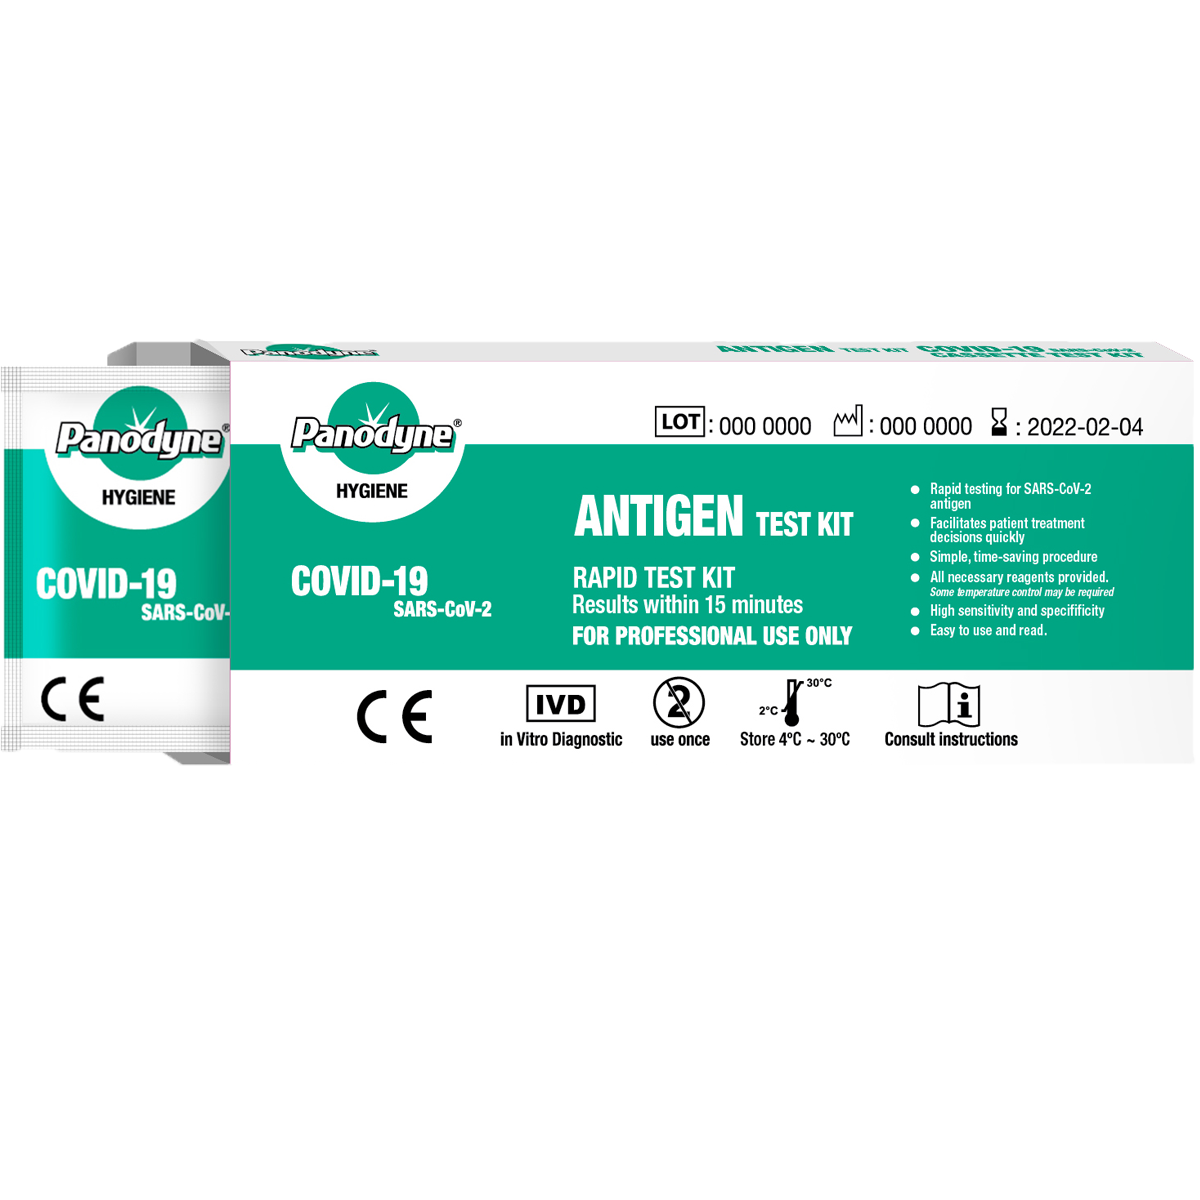 LATERAL FLOW RAPID COVID 19 TEST KITS IN STOCK